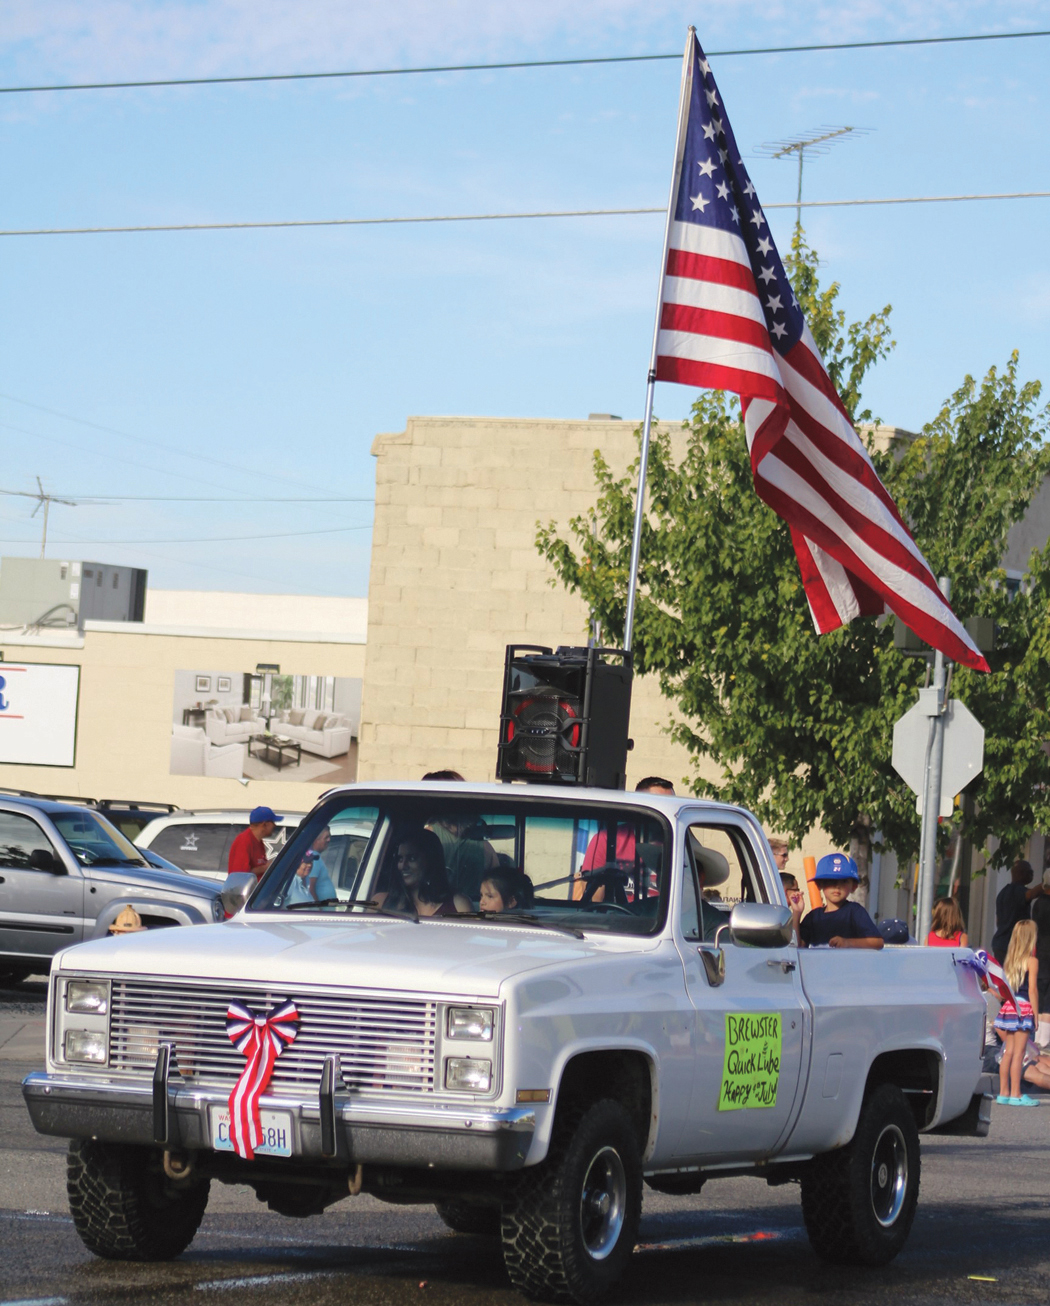 The largest flag in the parade belonged to Brewster Quick Lube.